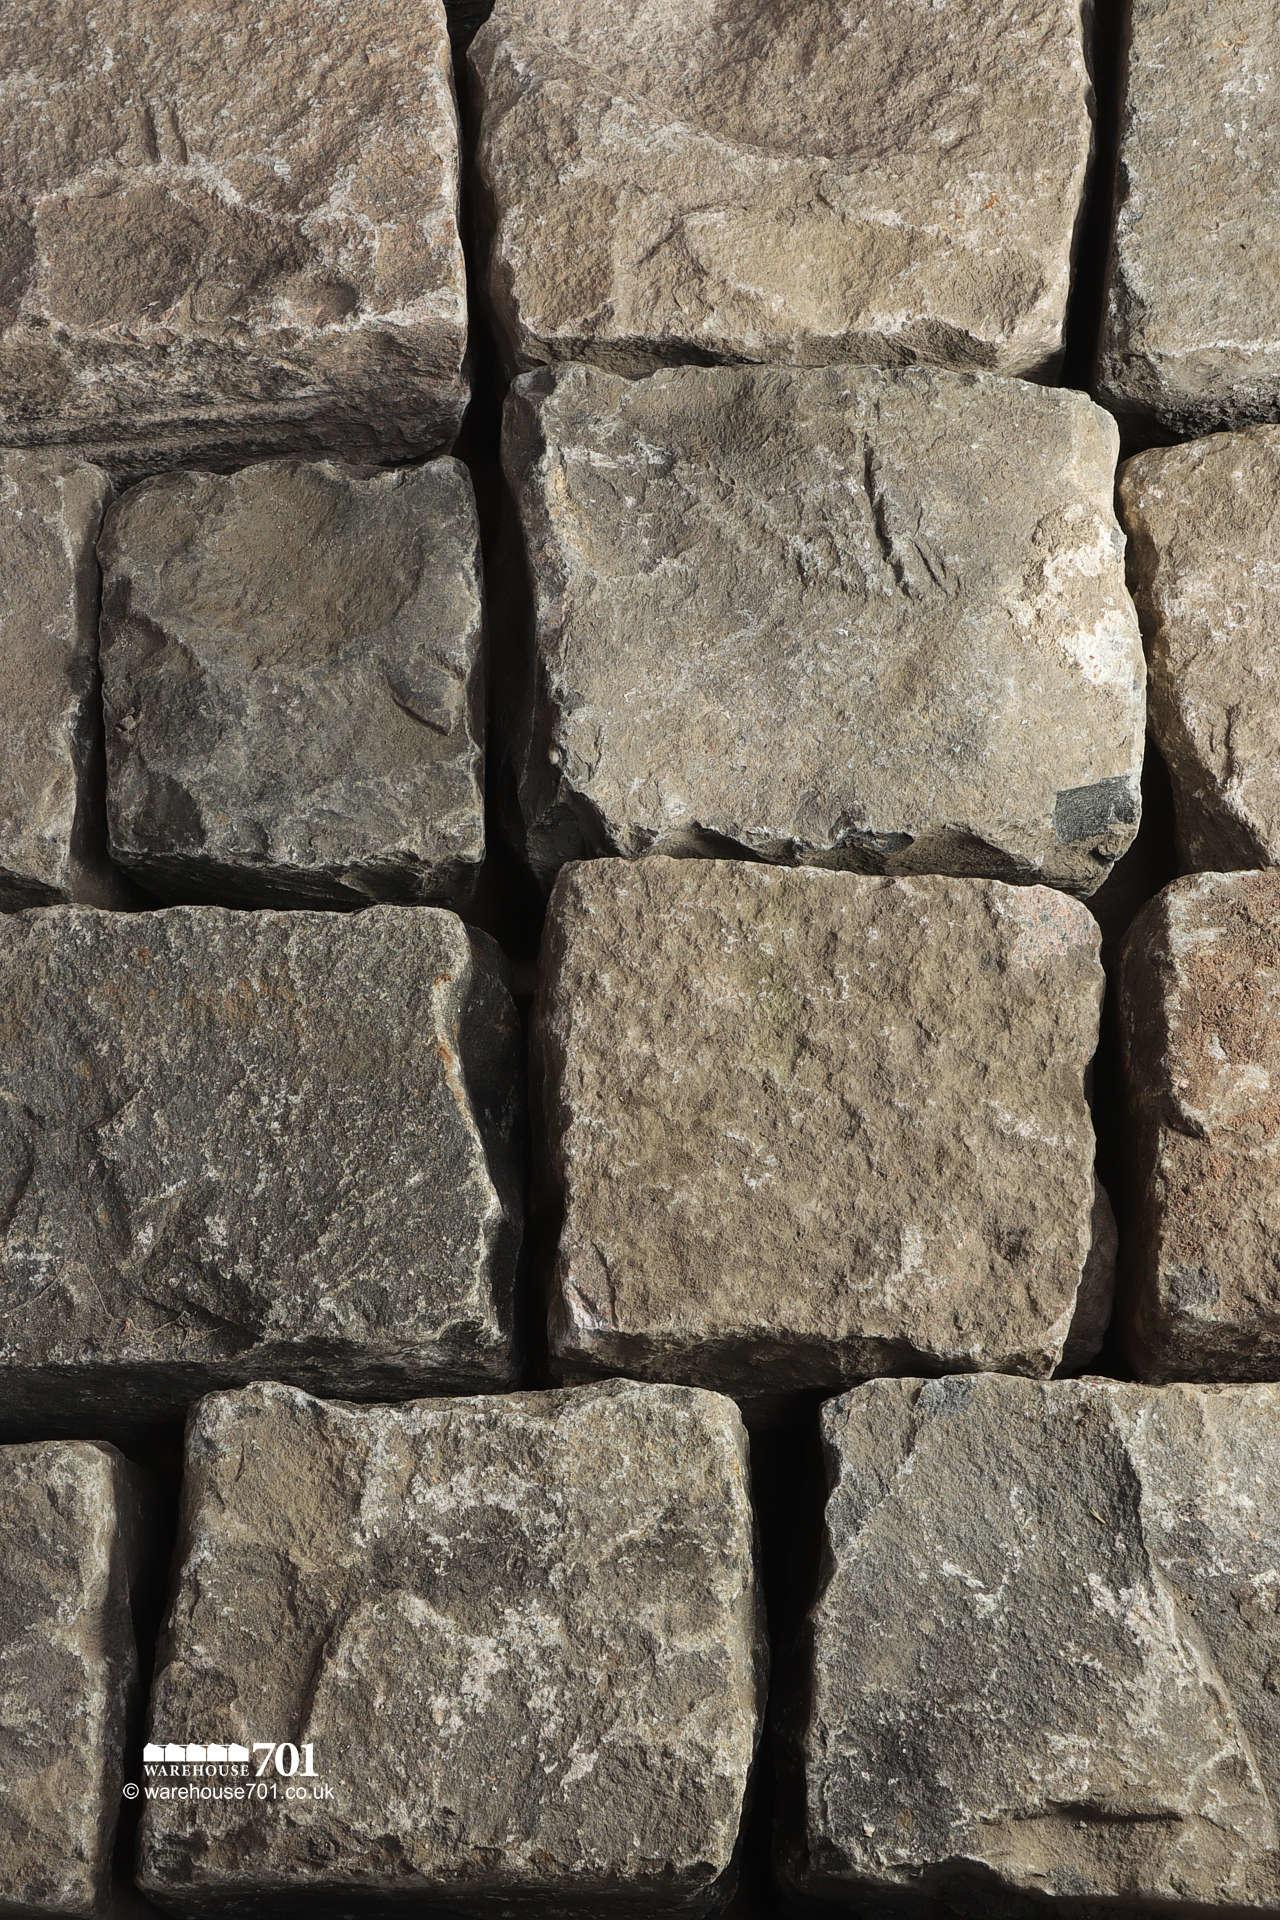 Salvaged Full Size Granite Squared Cobbles or Setts #2